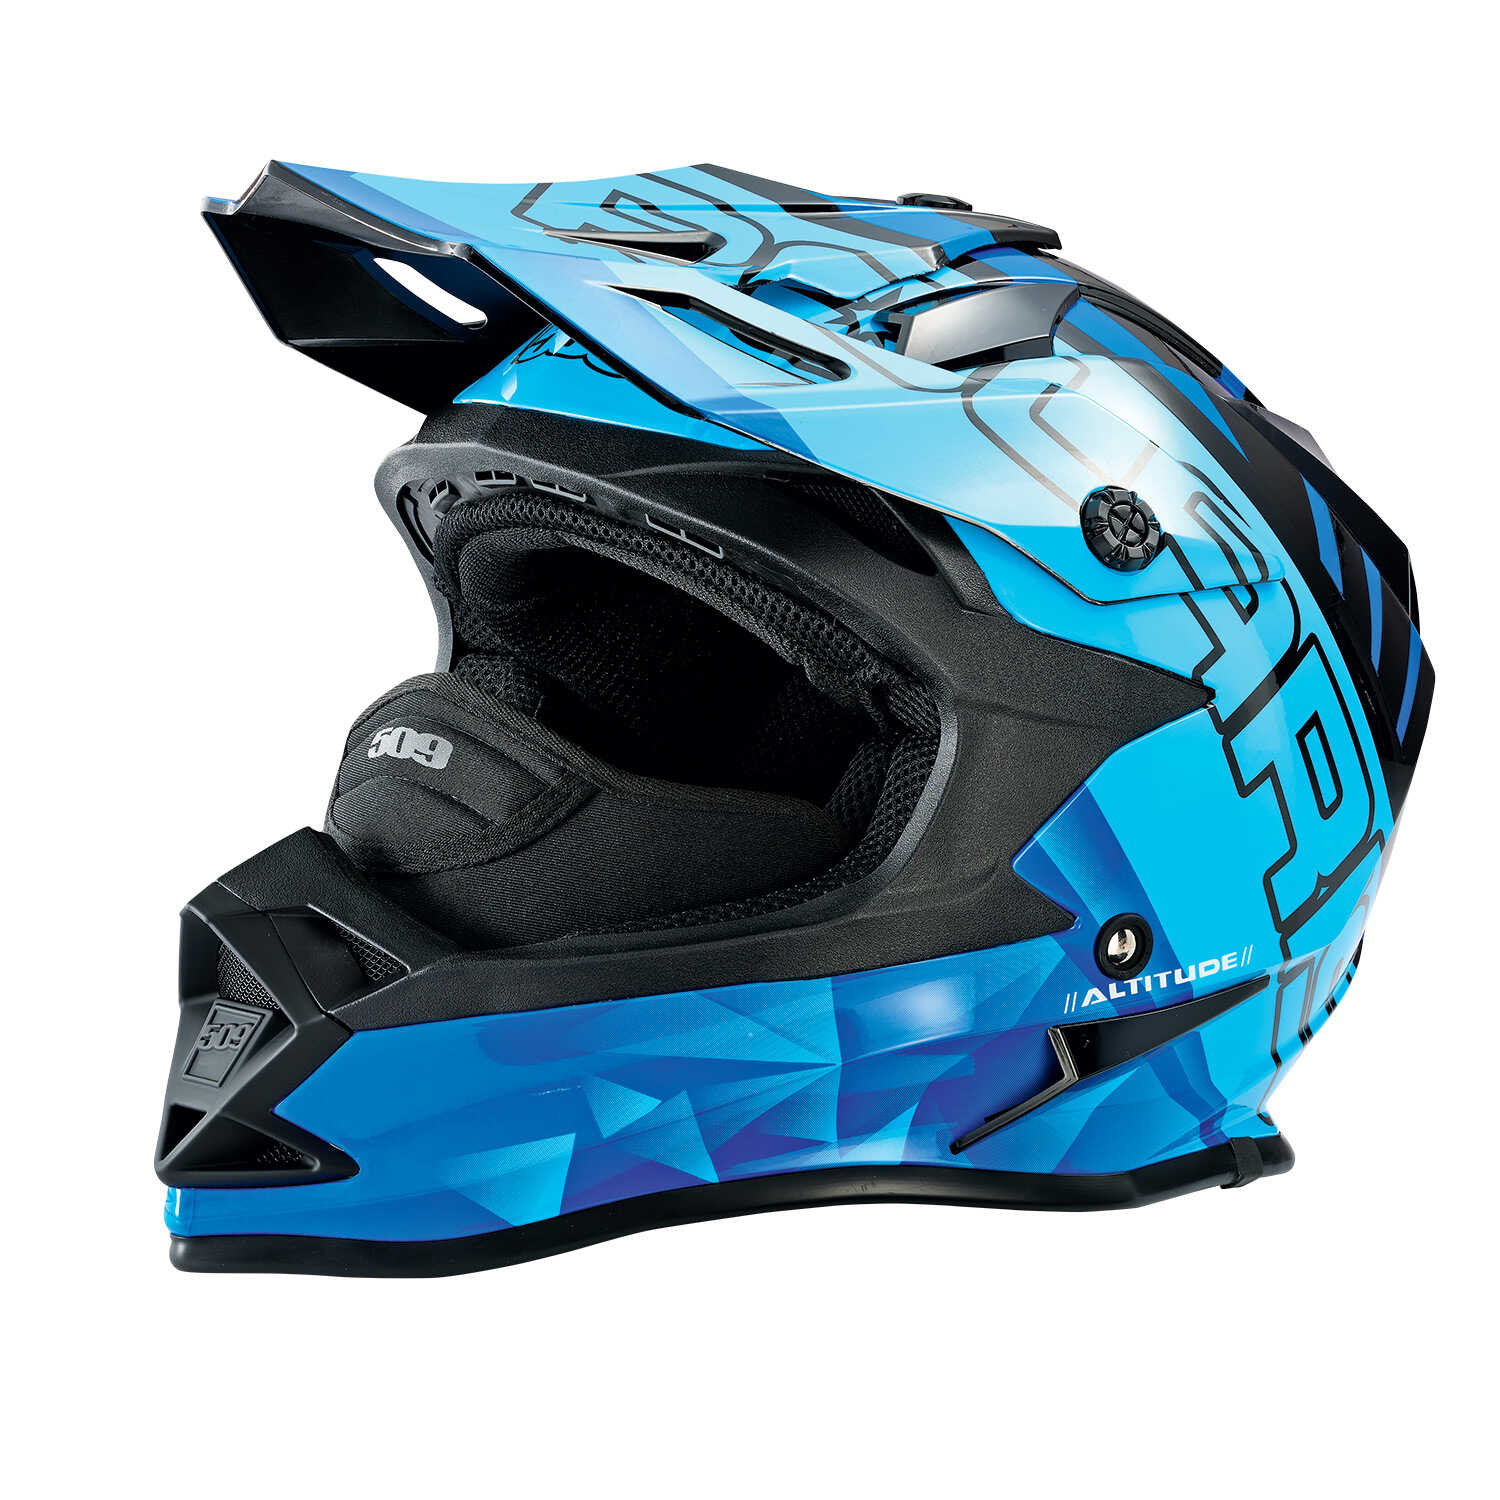 509® Altitude Adult Moto Helmet with Camera Mount, Blue